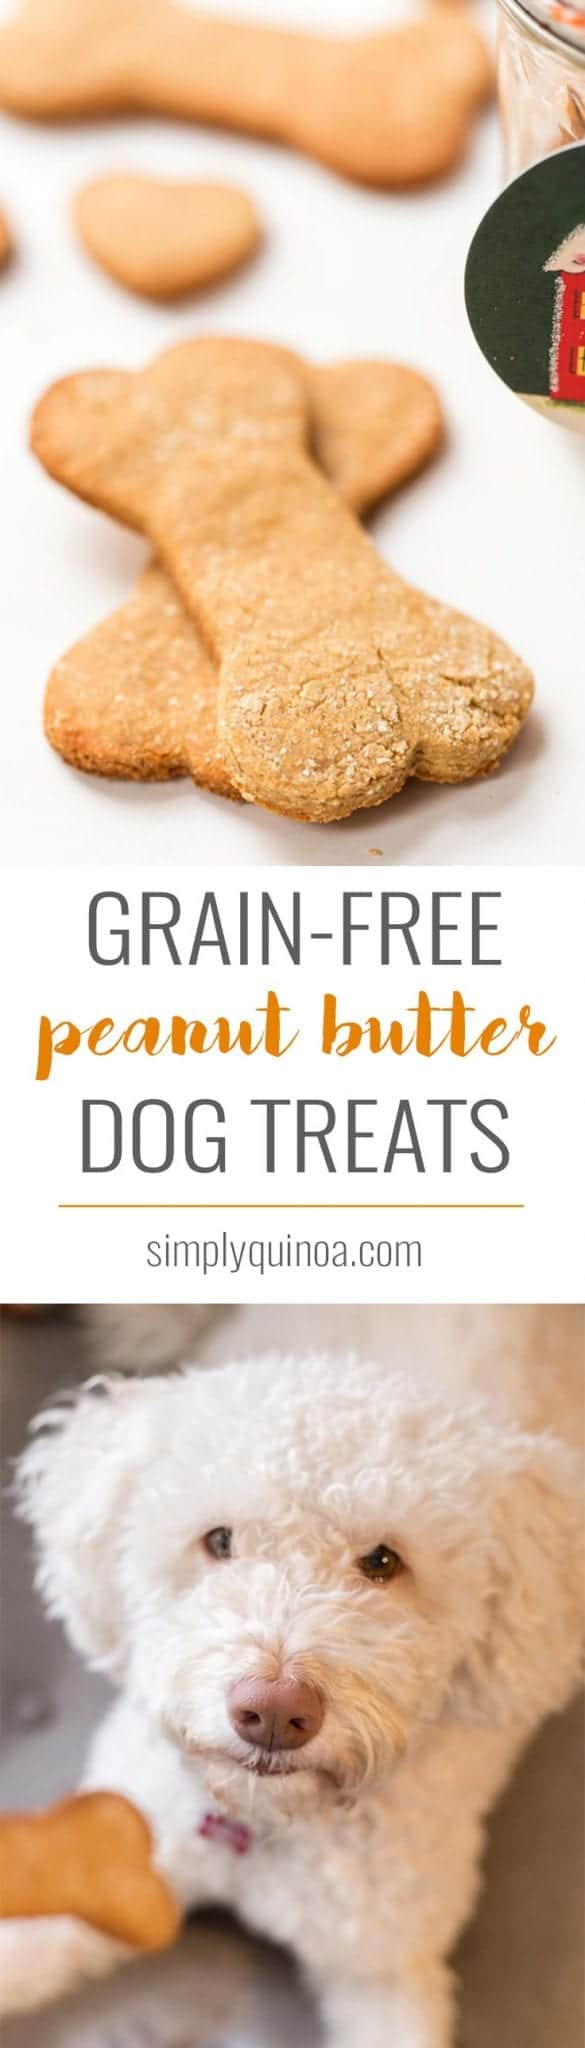 Garage Se Peanut Butter Dog Treats Are Easy Make A Peanut Butter Dog Treats Simply Quinoa Homemade Grain Free Liver Dog Treats Homemade Grain Free Potato Dog Treats Recipe bark post Homemade Grain Free Dog Treats